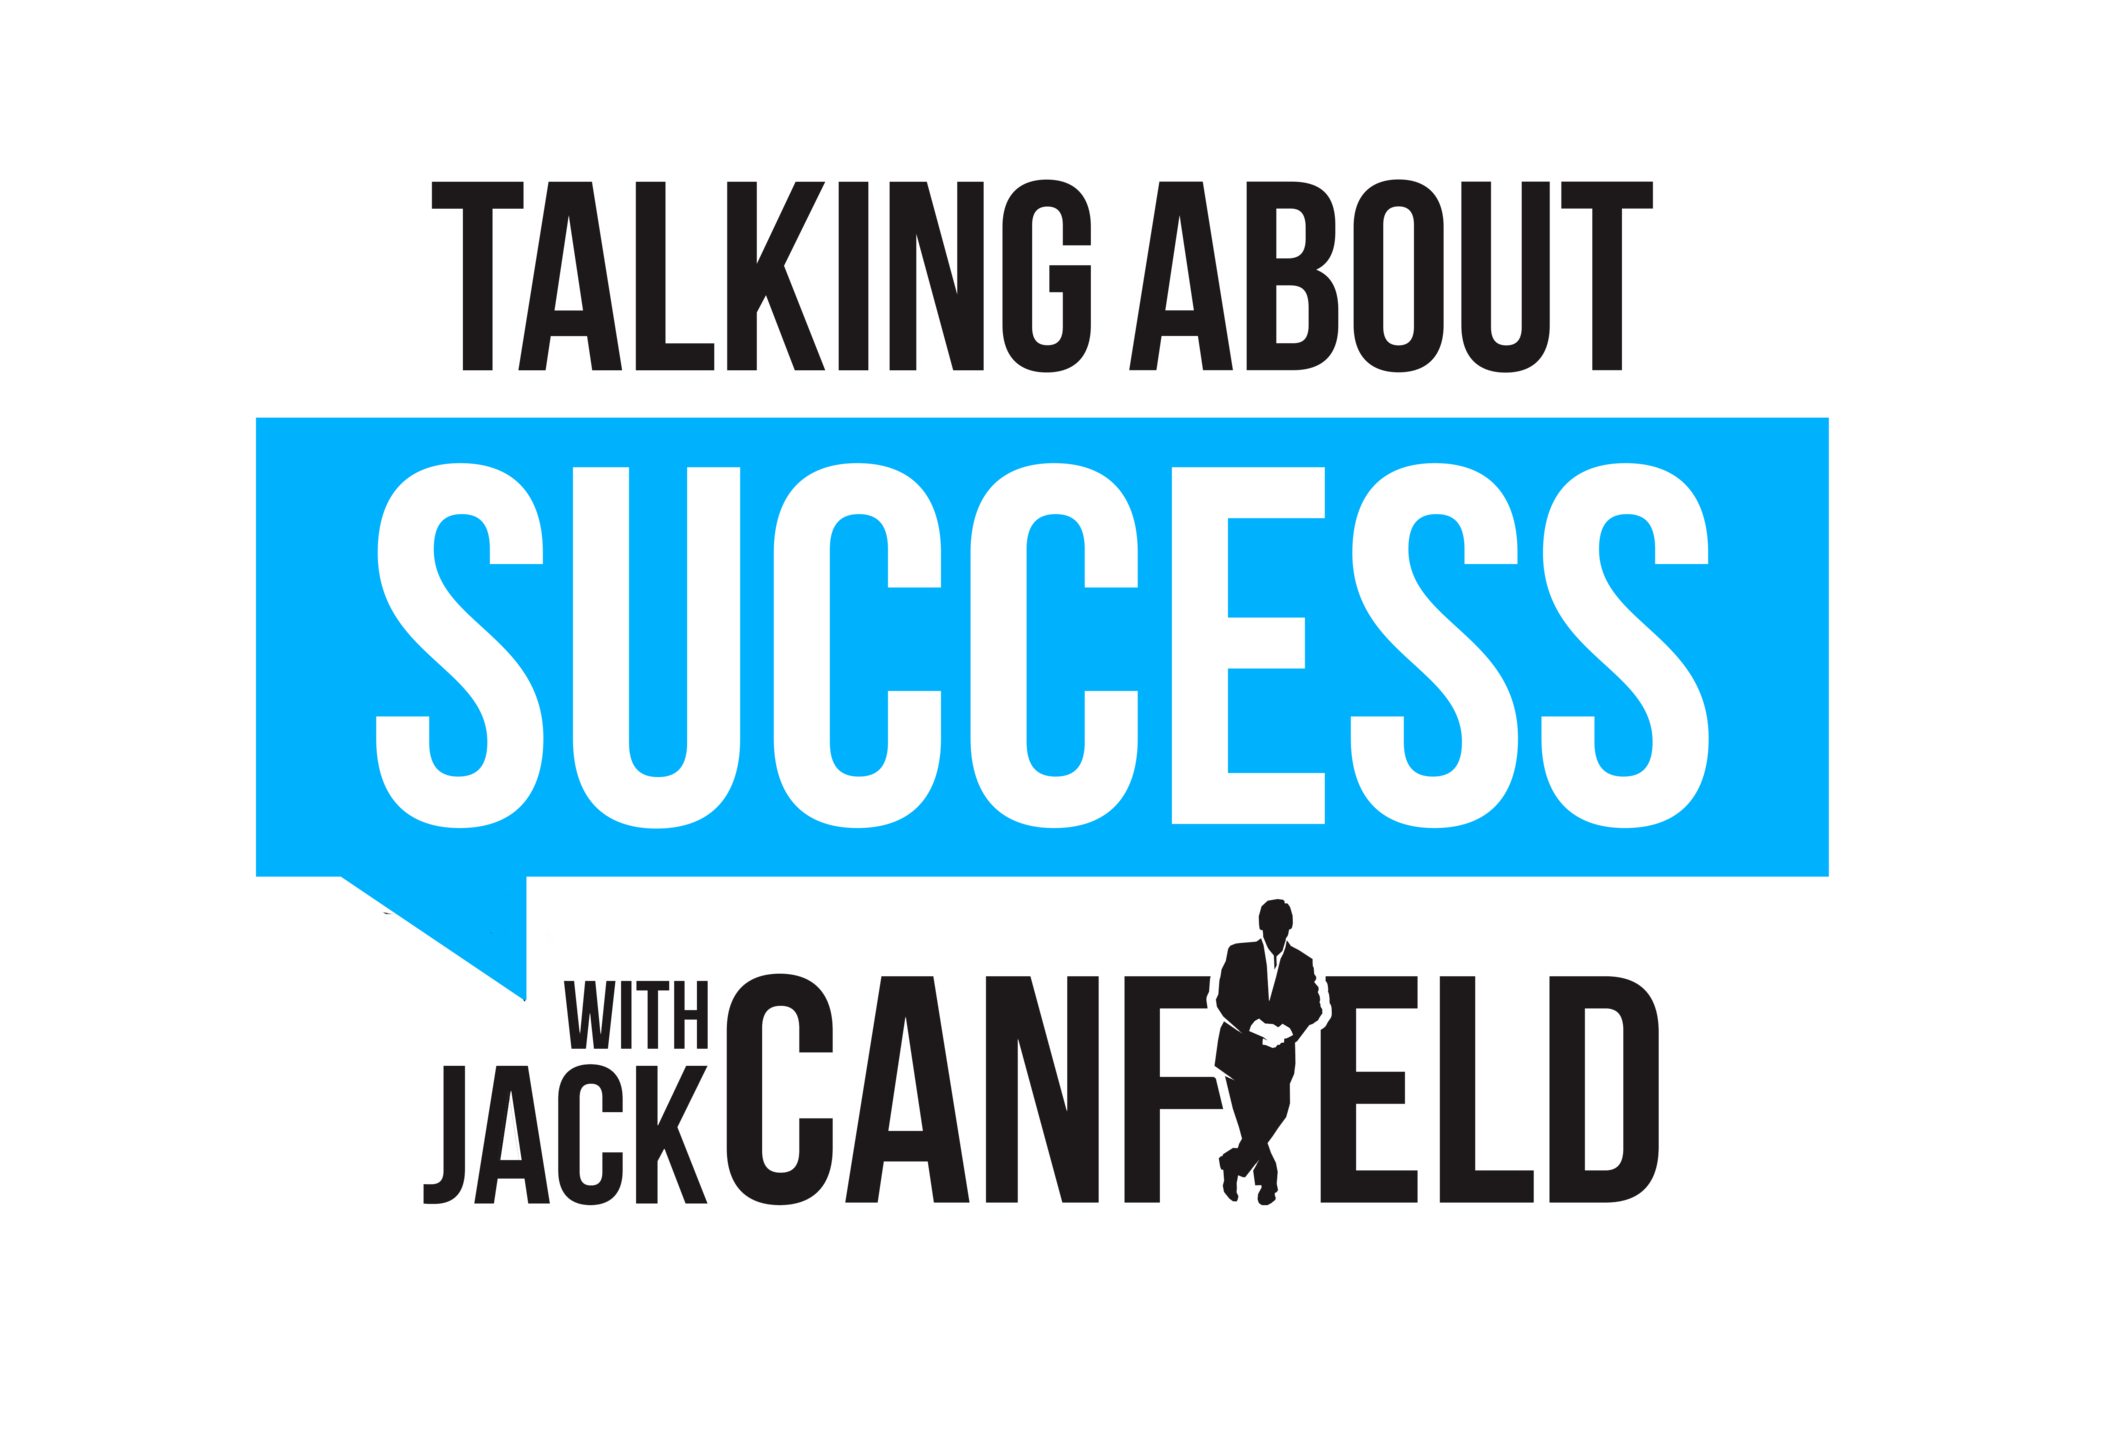 Talking About Success with Jack Canfield